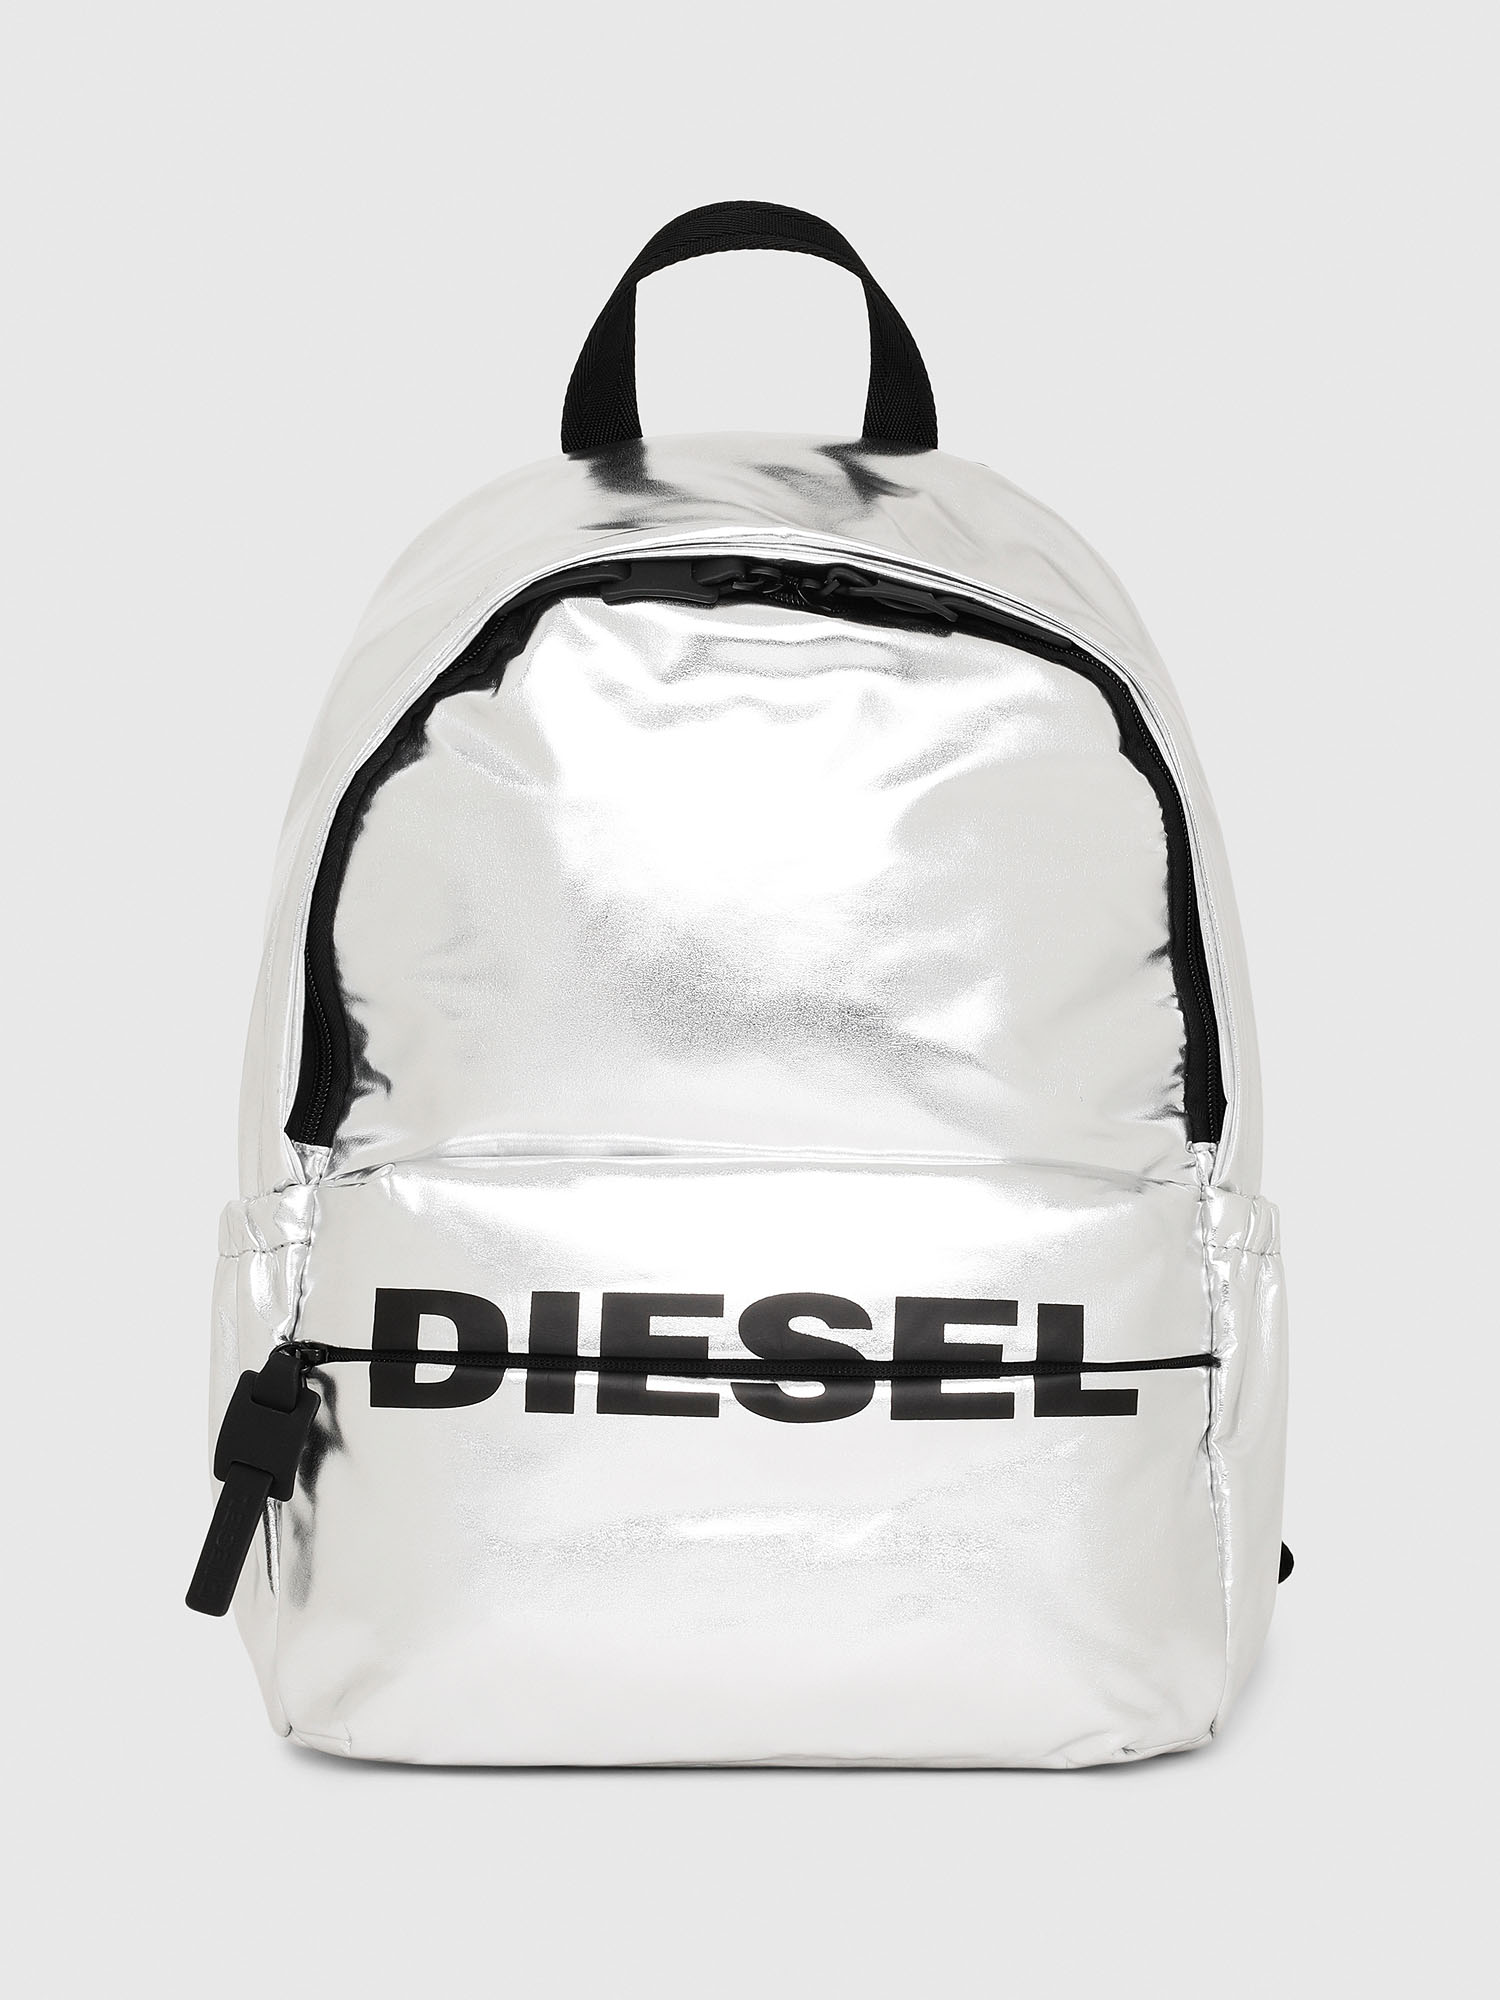 Diesel Backpacks P2540 - Silver